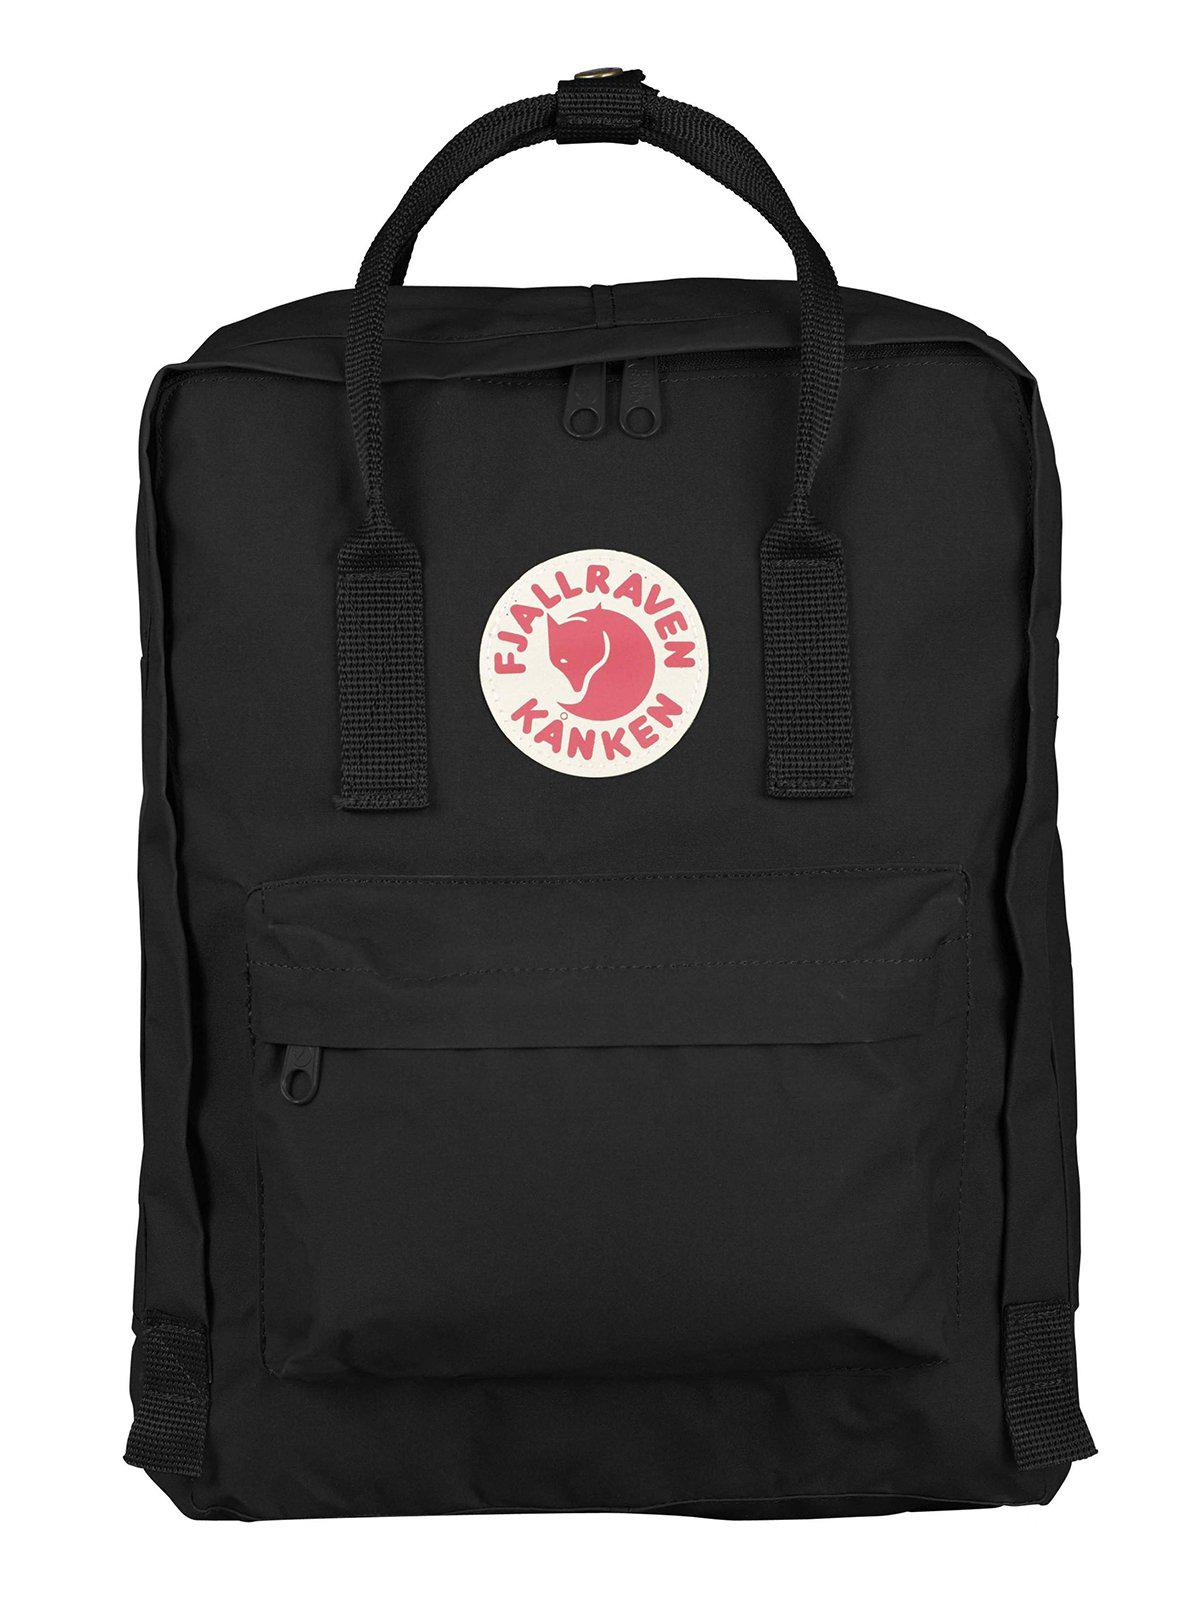 Fjallraven Kanken Classic Backpack Black - MORE by Morello Indonesia